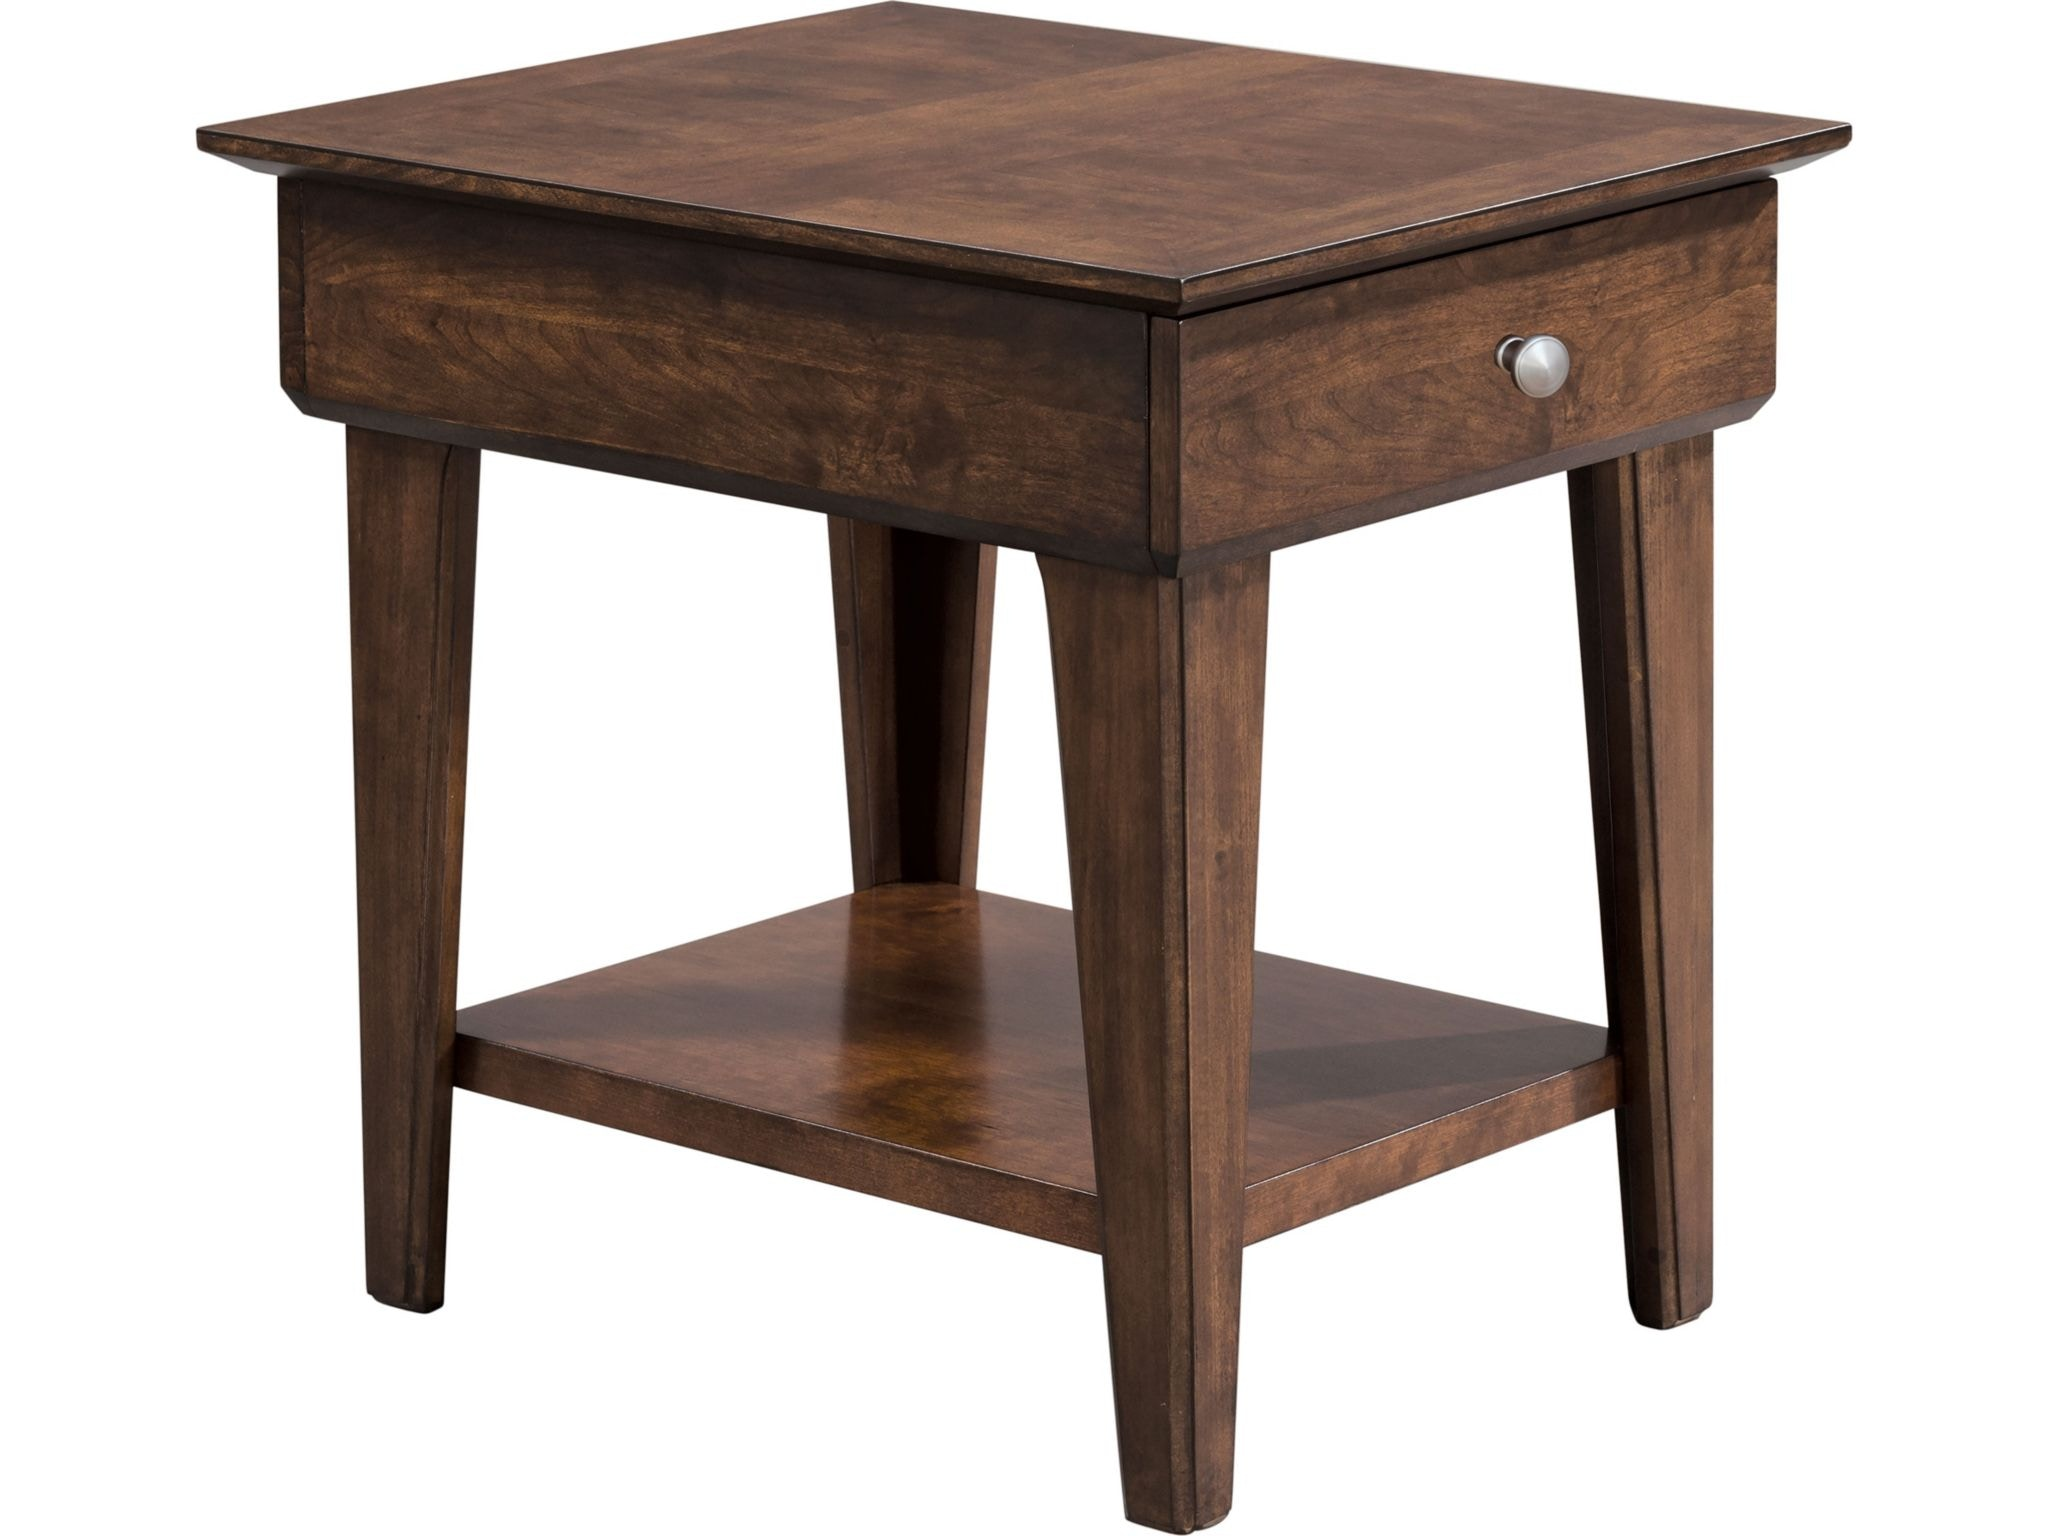 Thomasville Living Room Drawer End Table 85231 210 At INTERIORS